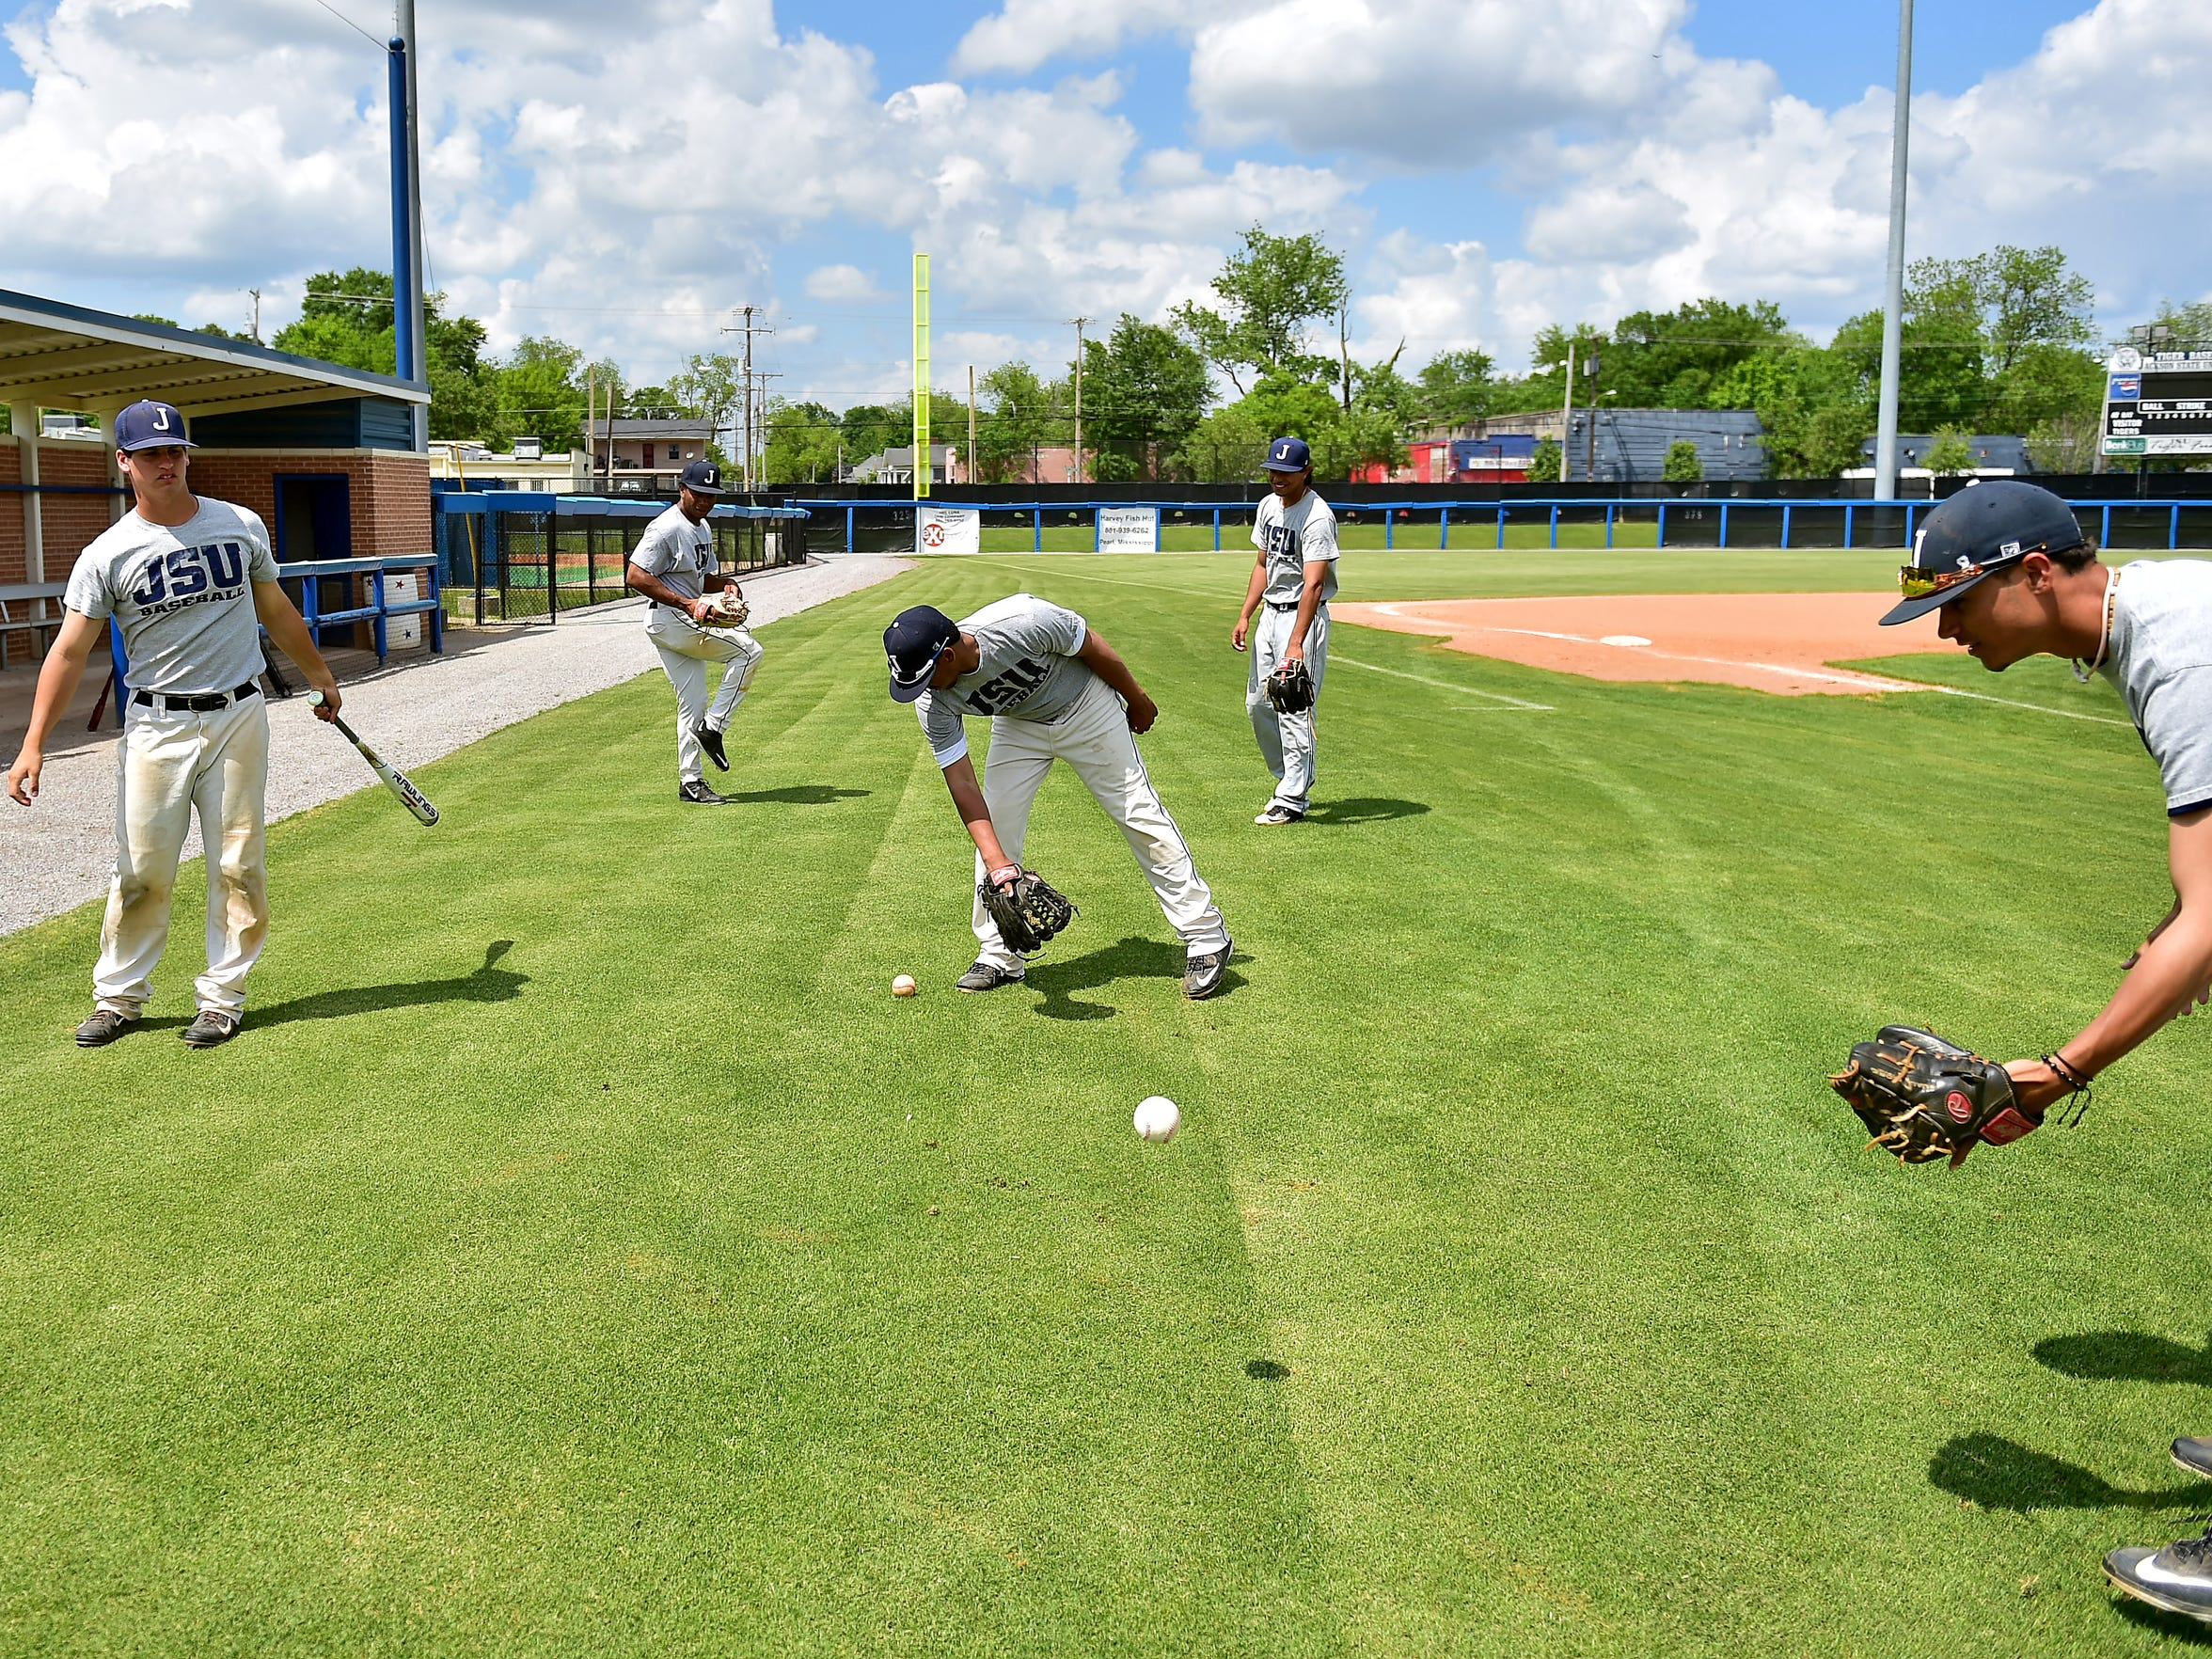 Jackson State's international baseball players have had to face quite a few adjustments since they came to America.